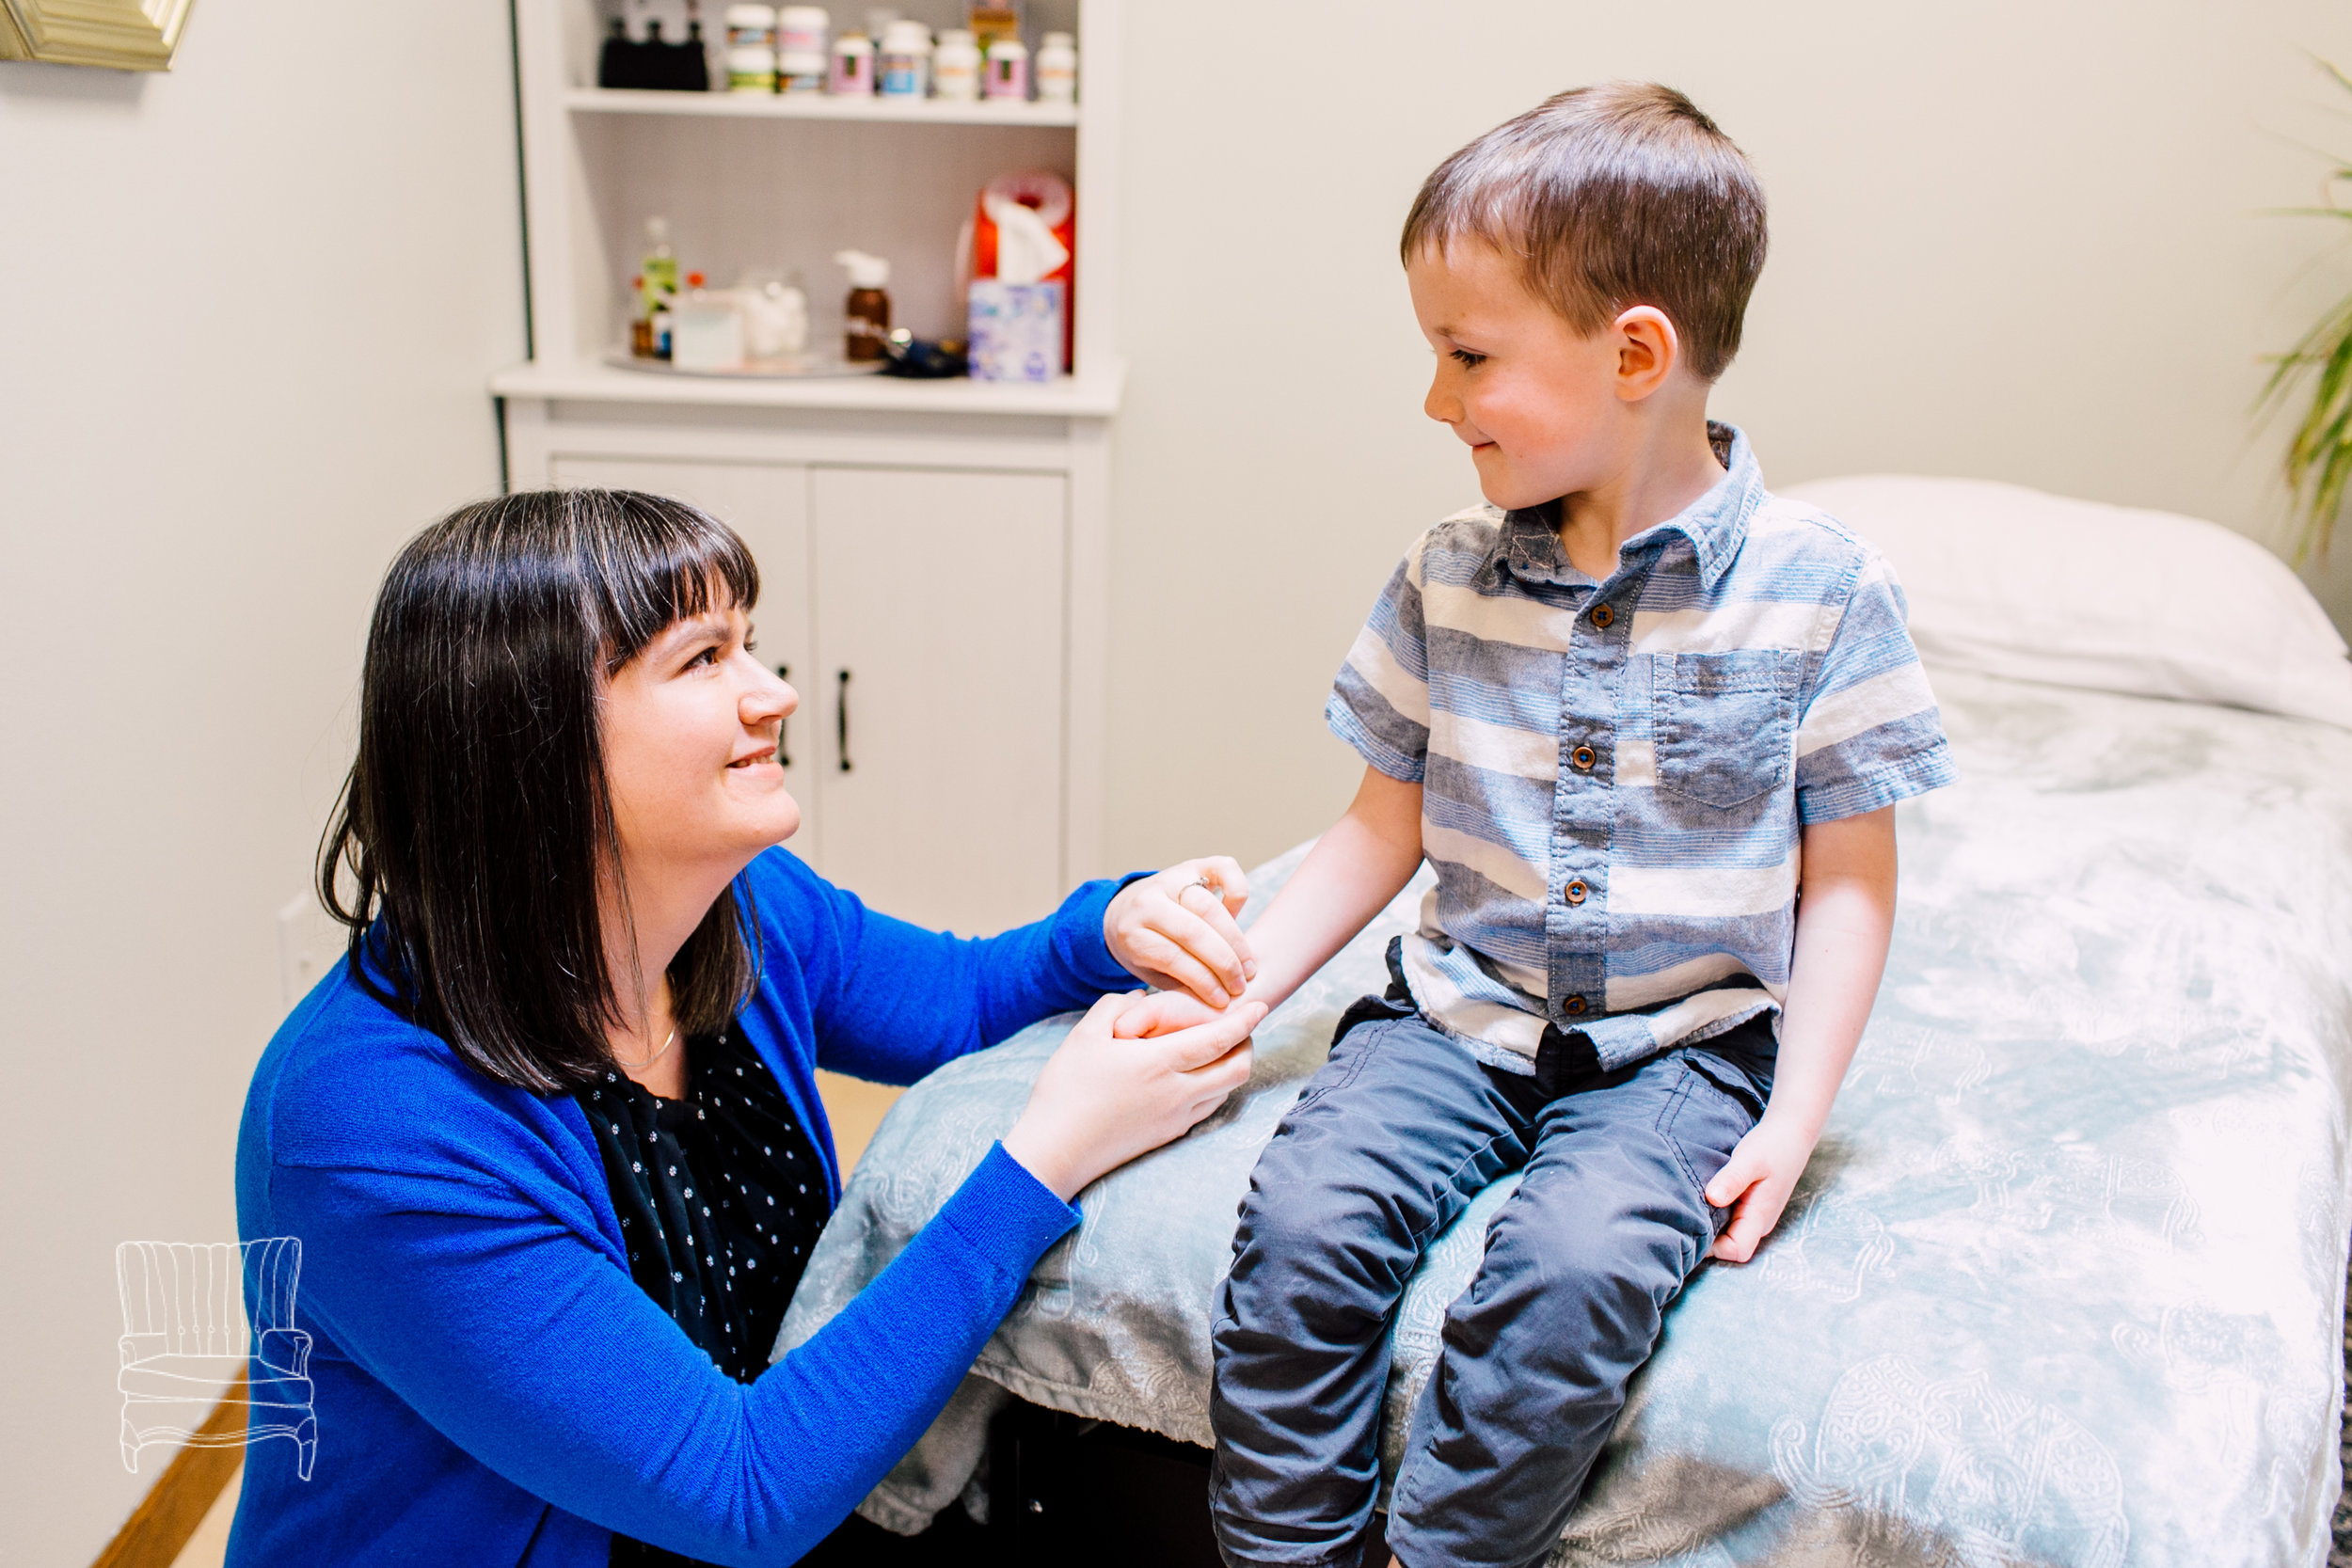 whatcom-family-acupuncture-katheryn-moran-photography-20.JPG